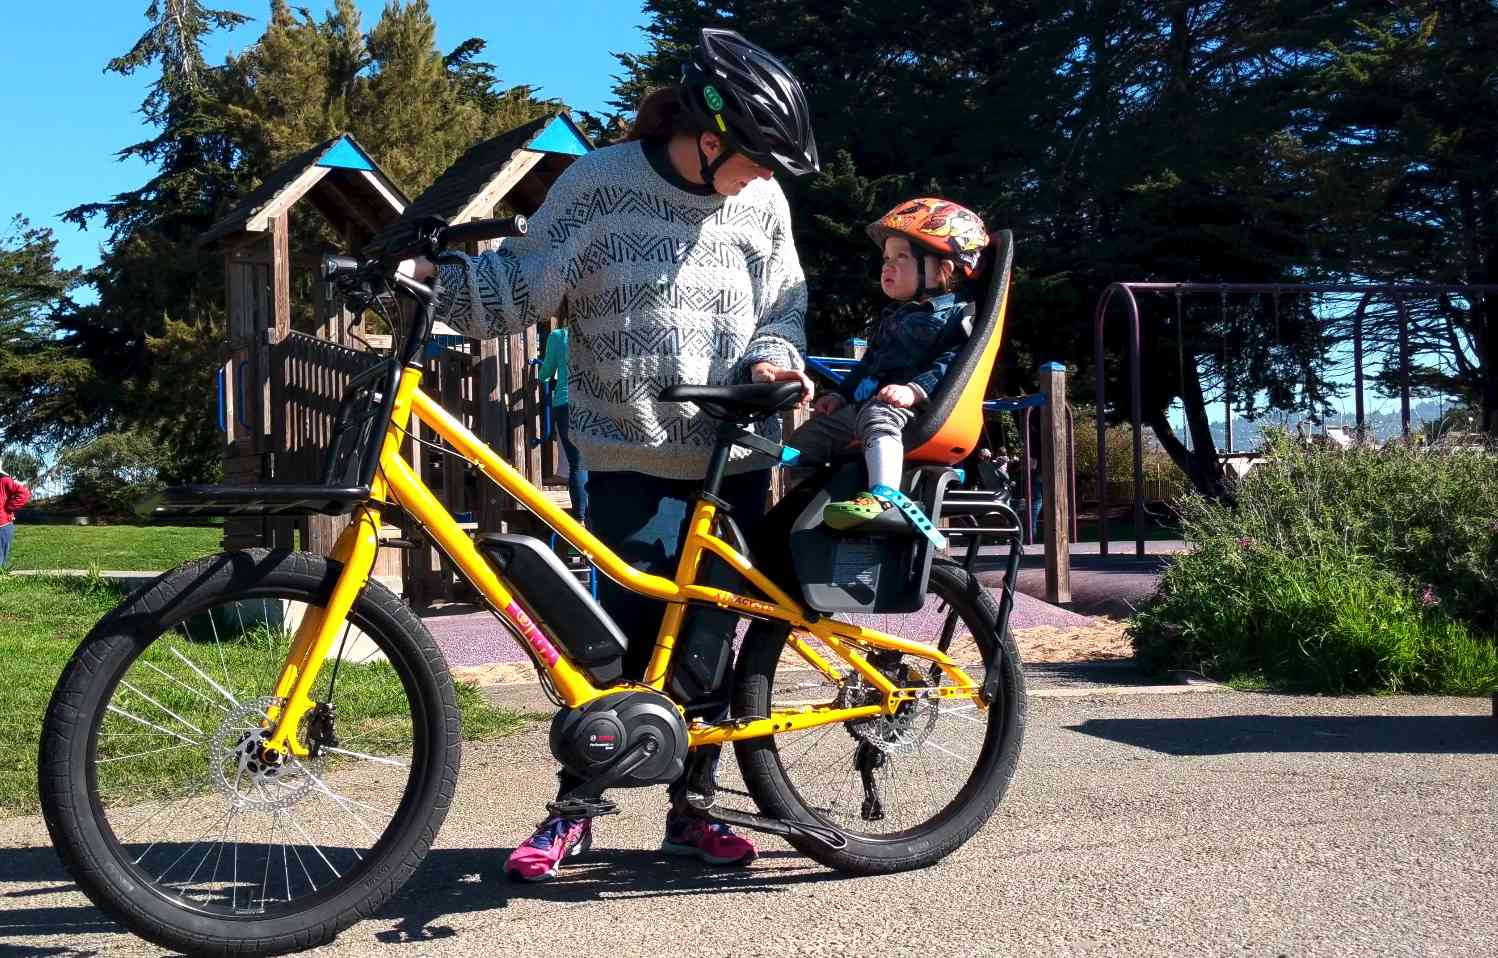 xtracycle set up for kids